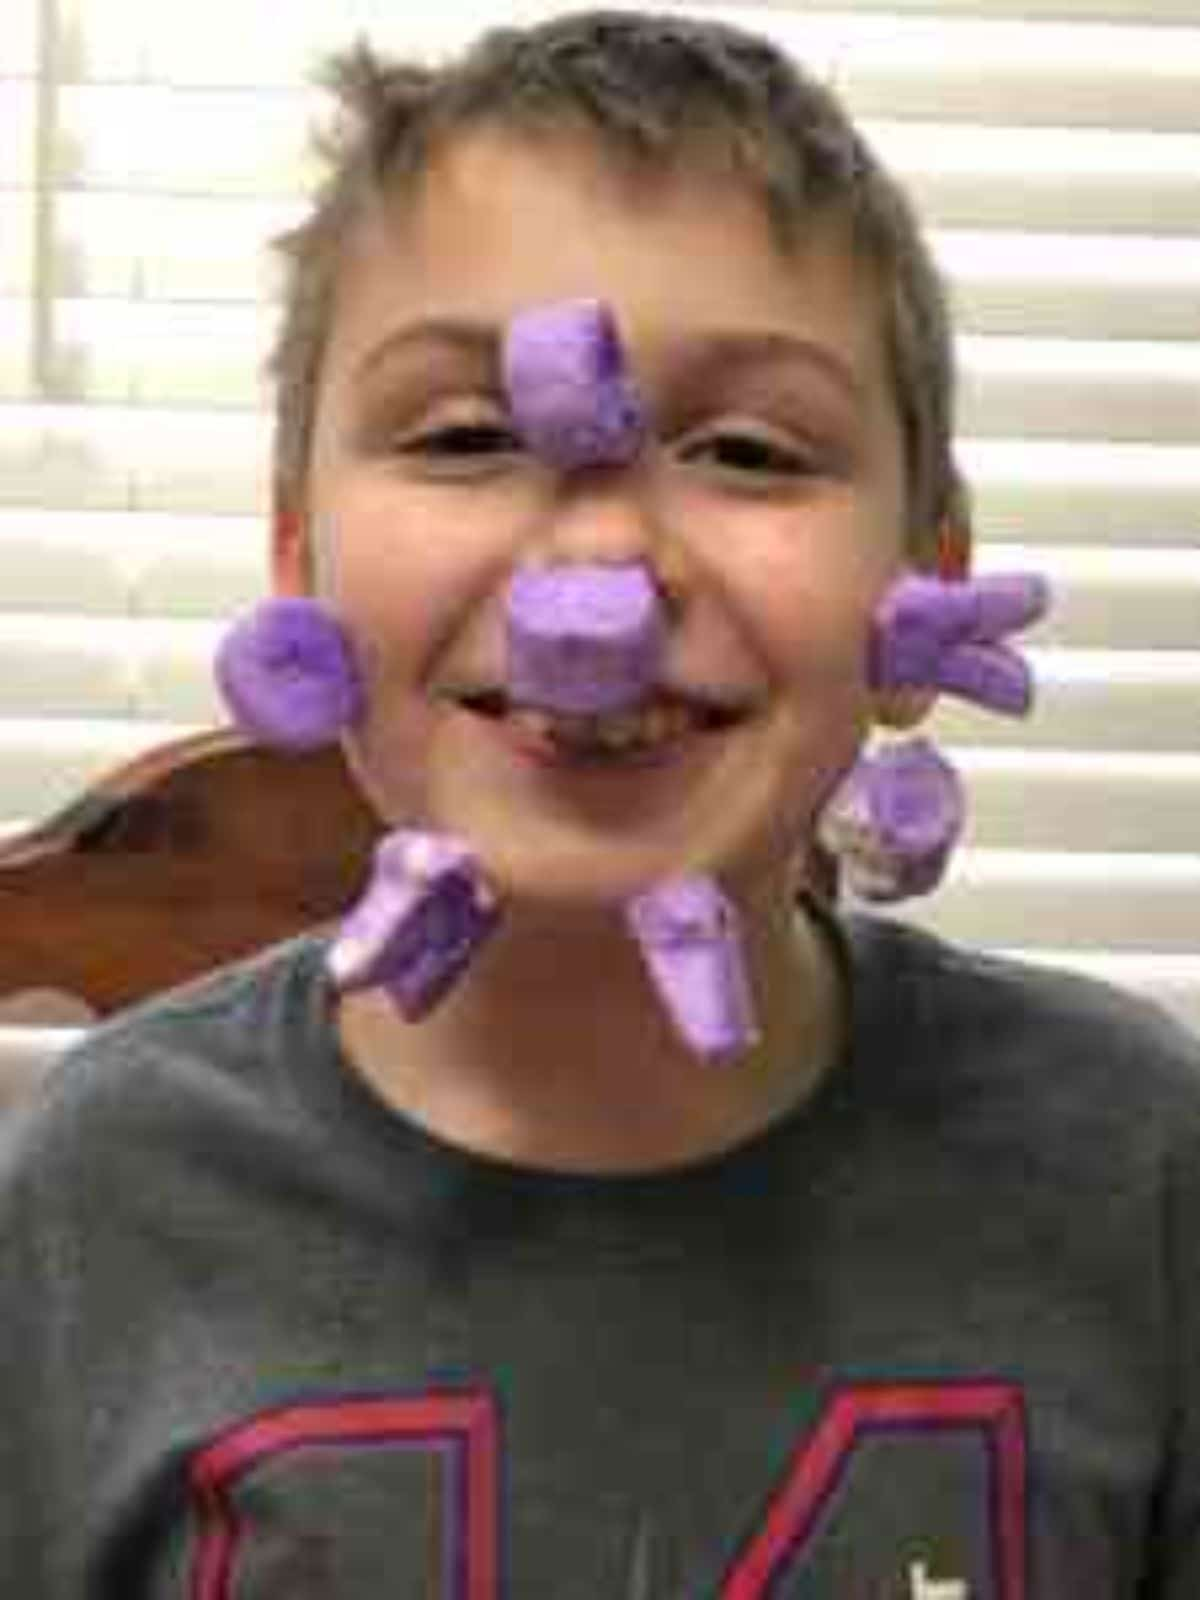 a boy in a grey tshirt smiles at the camera. He has 7 purple marshmallow peeps stuck to his face.